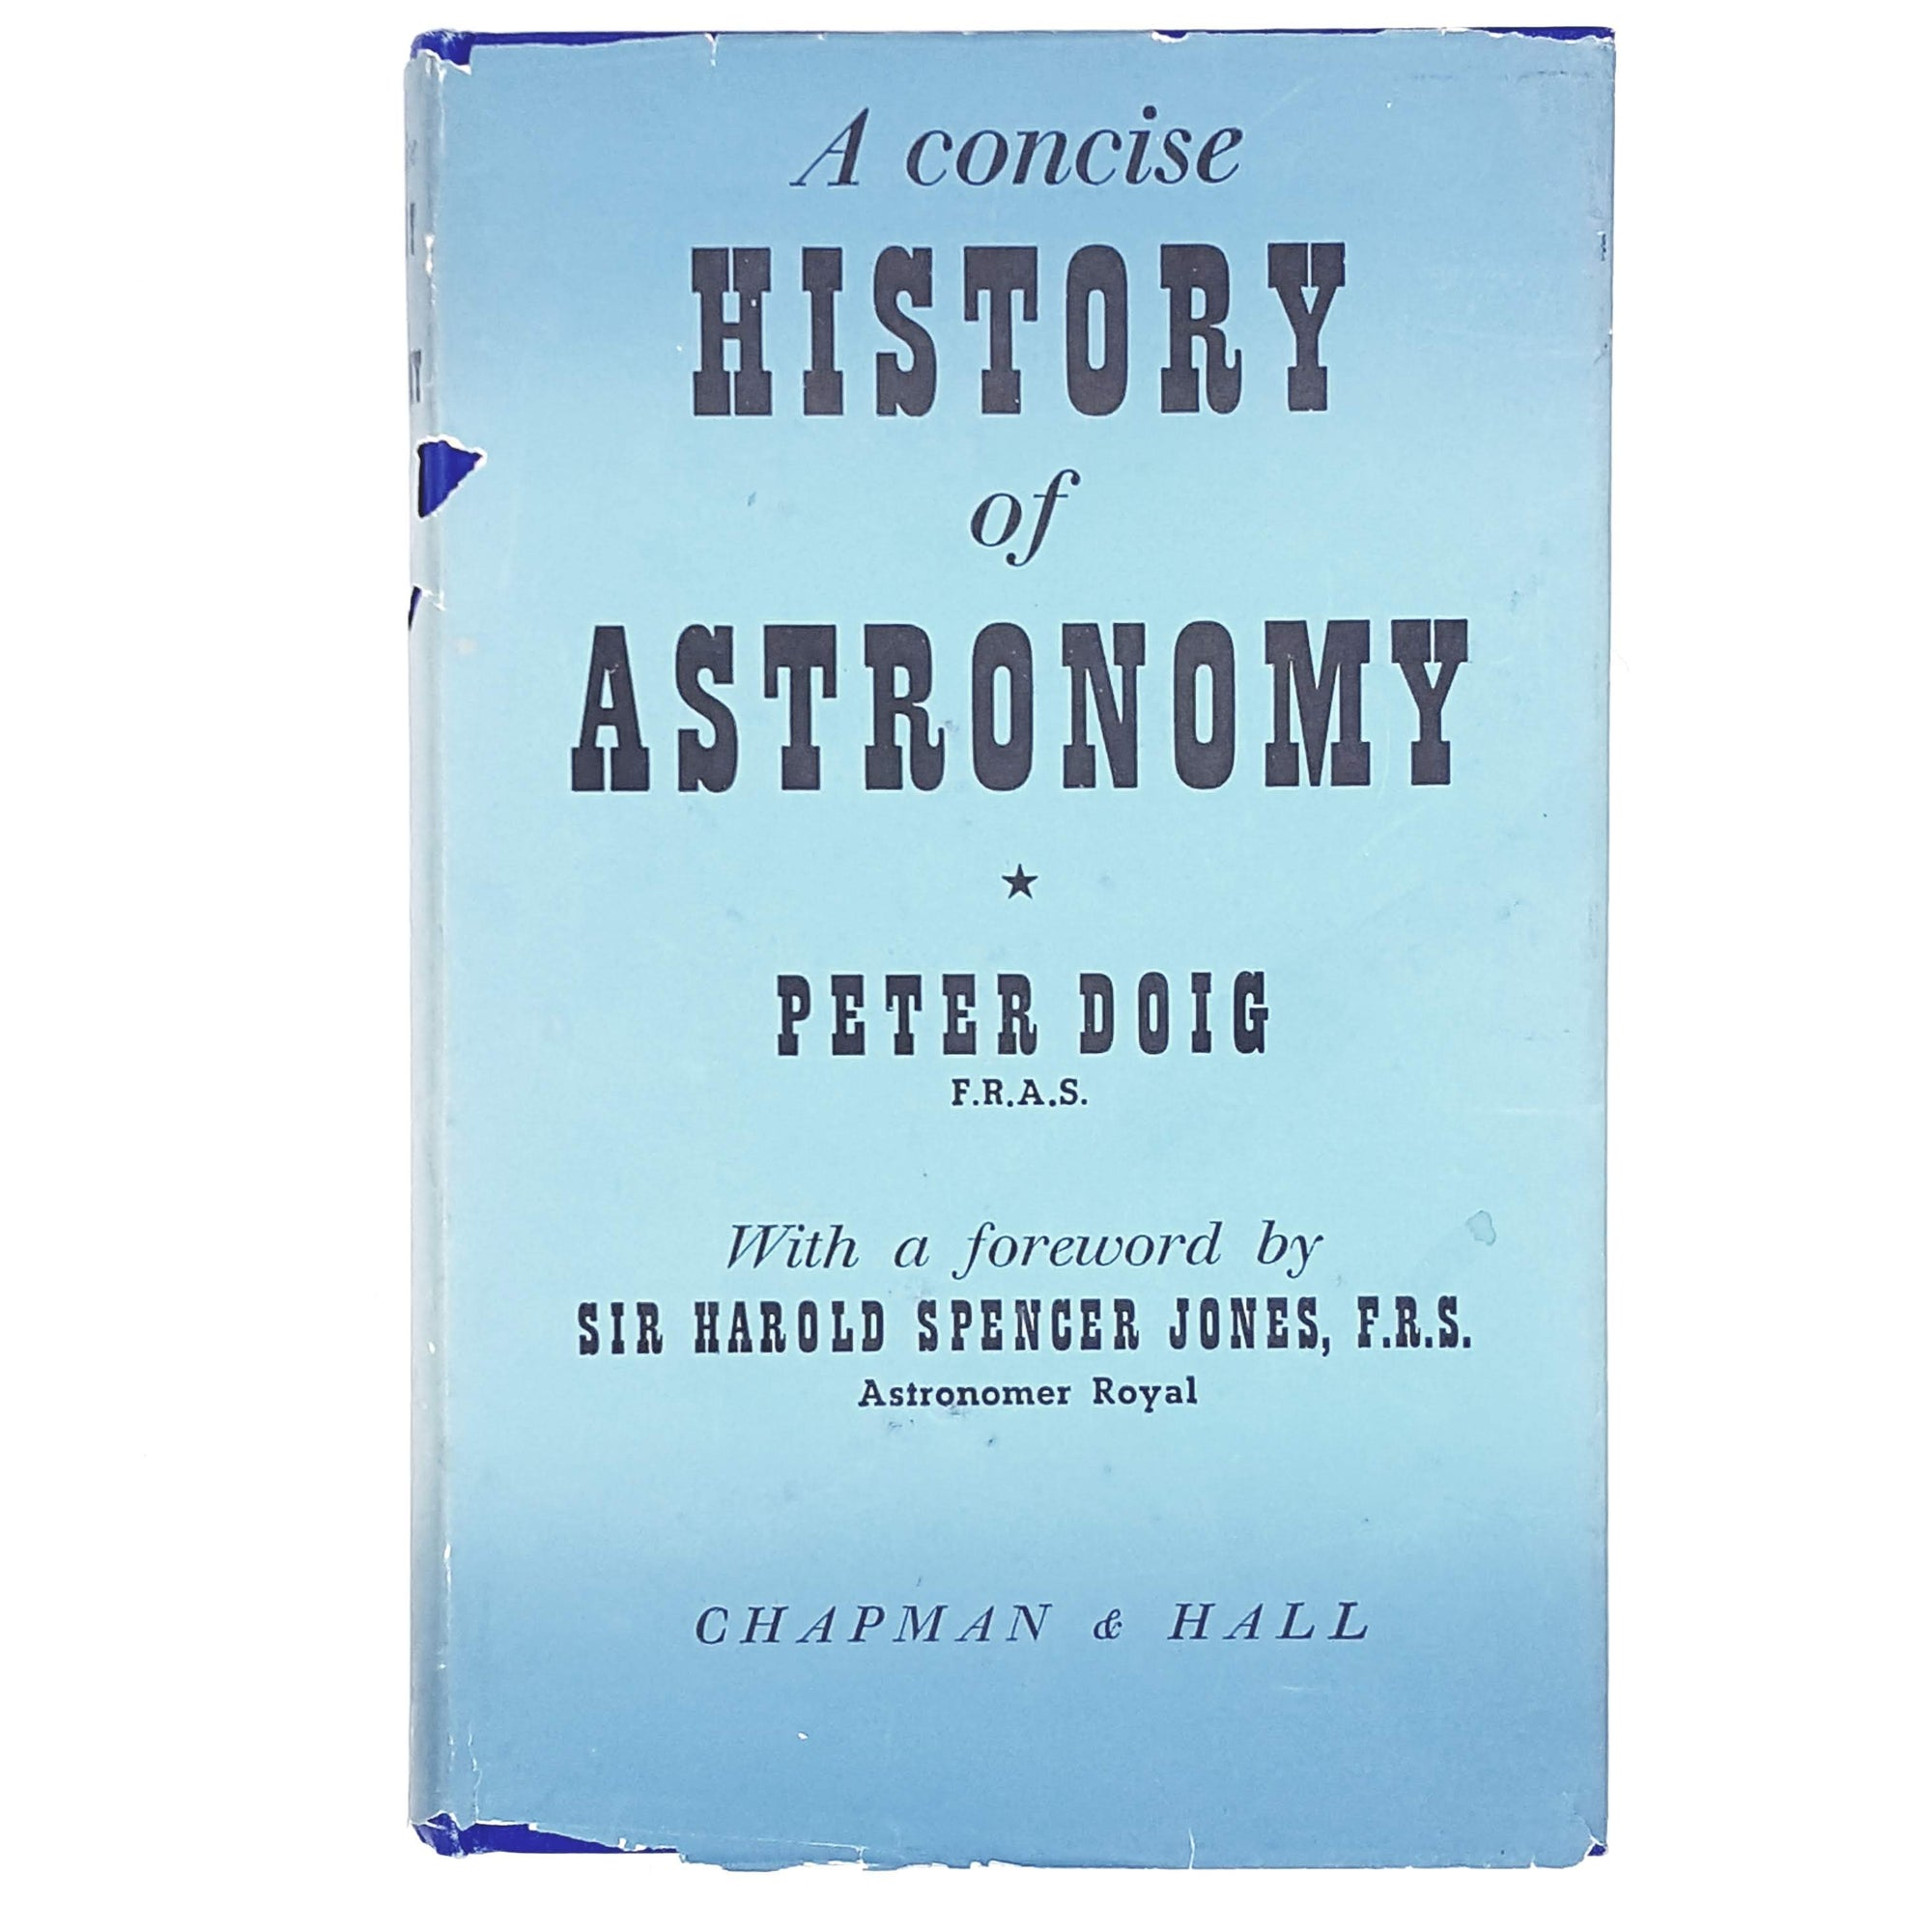 A Concise History of Astronomy by Peter Doig 1950